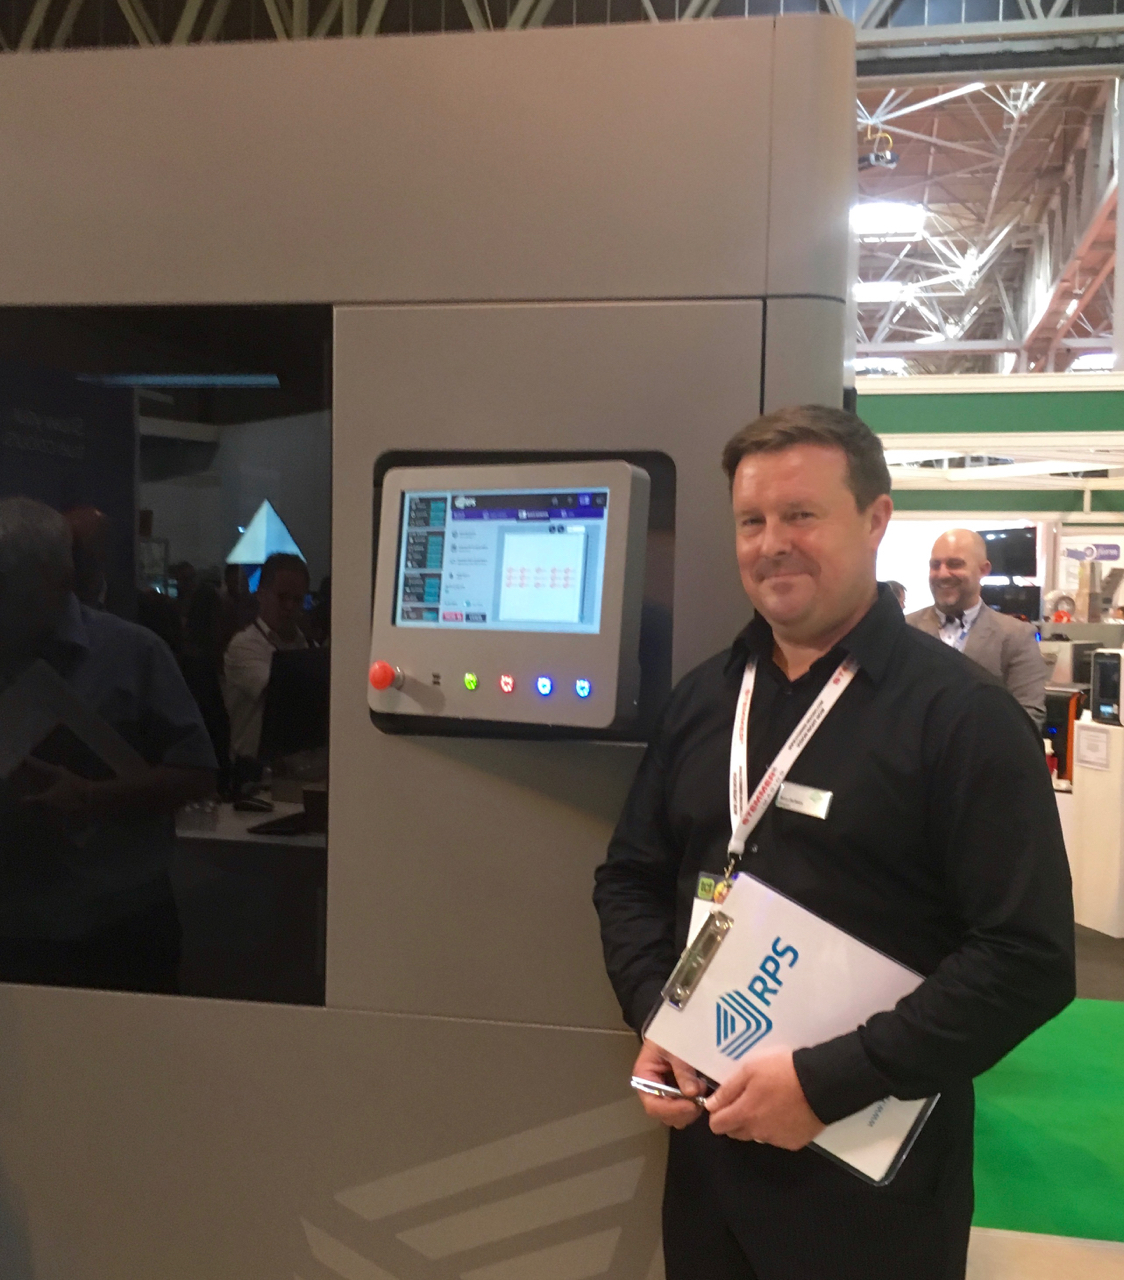 Rory Jackson with the RPS SL 3D printer